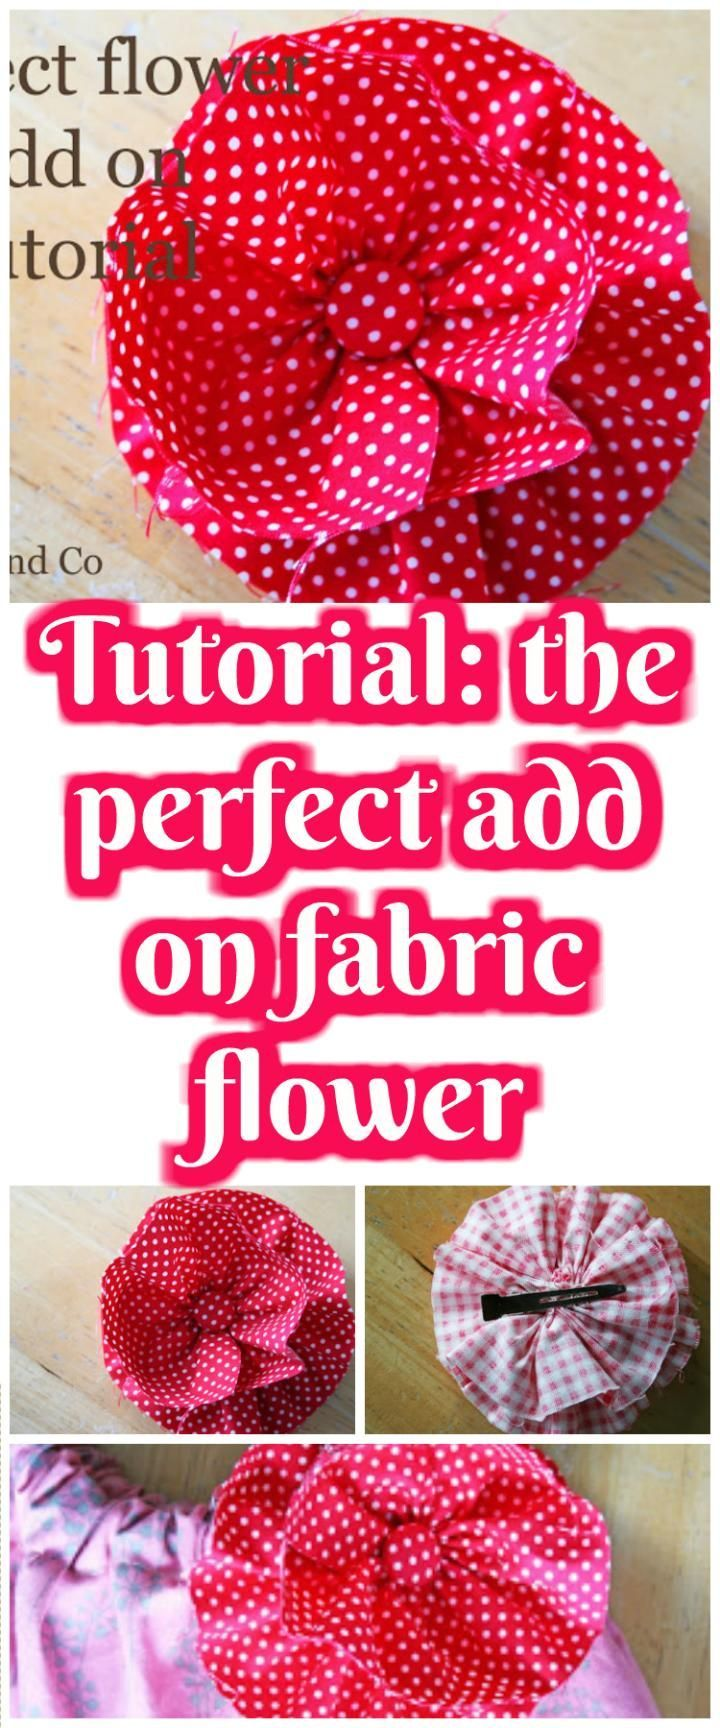 Tutorial the Perfect Add on Fabric Flower - 50 Easy Fabric Flowers Tutorial - Make Your Own Fabric Flowers - Page 3 of 10 - DIY & Crafts